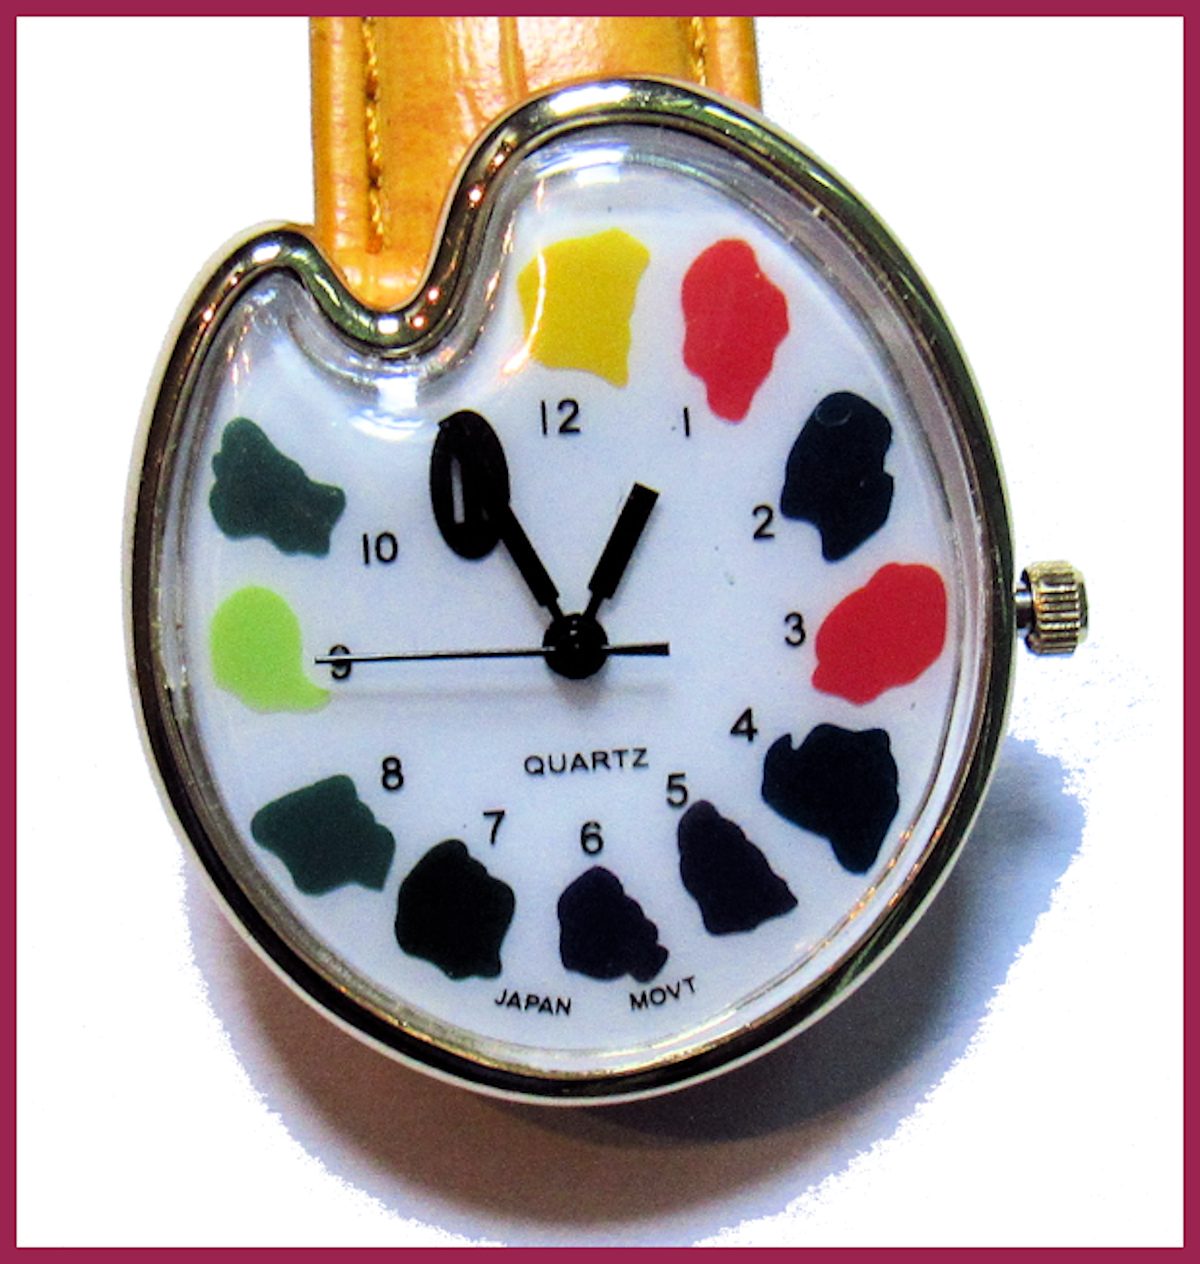 jewelry-palette-watch-face-boarder.jpg